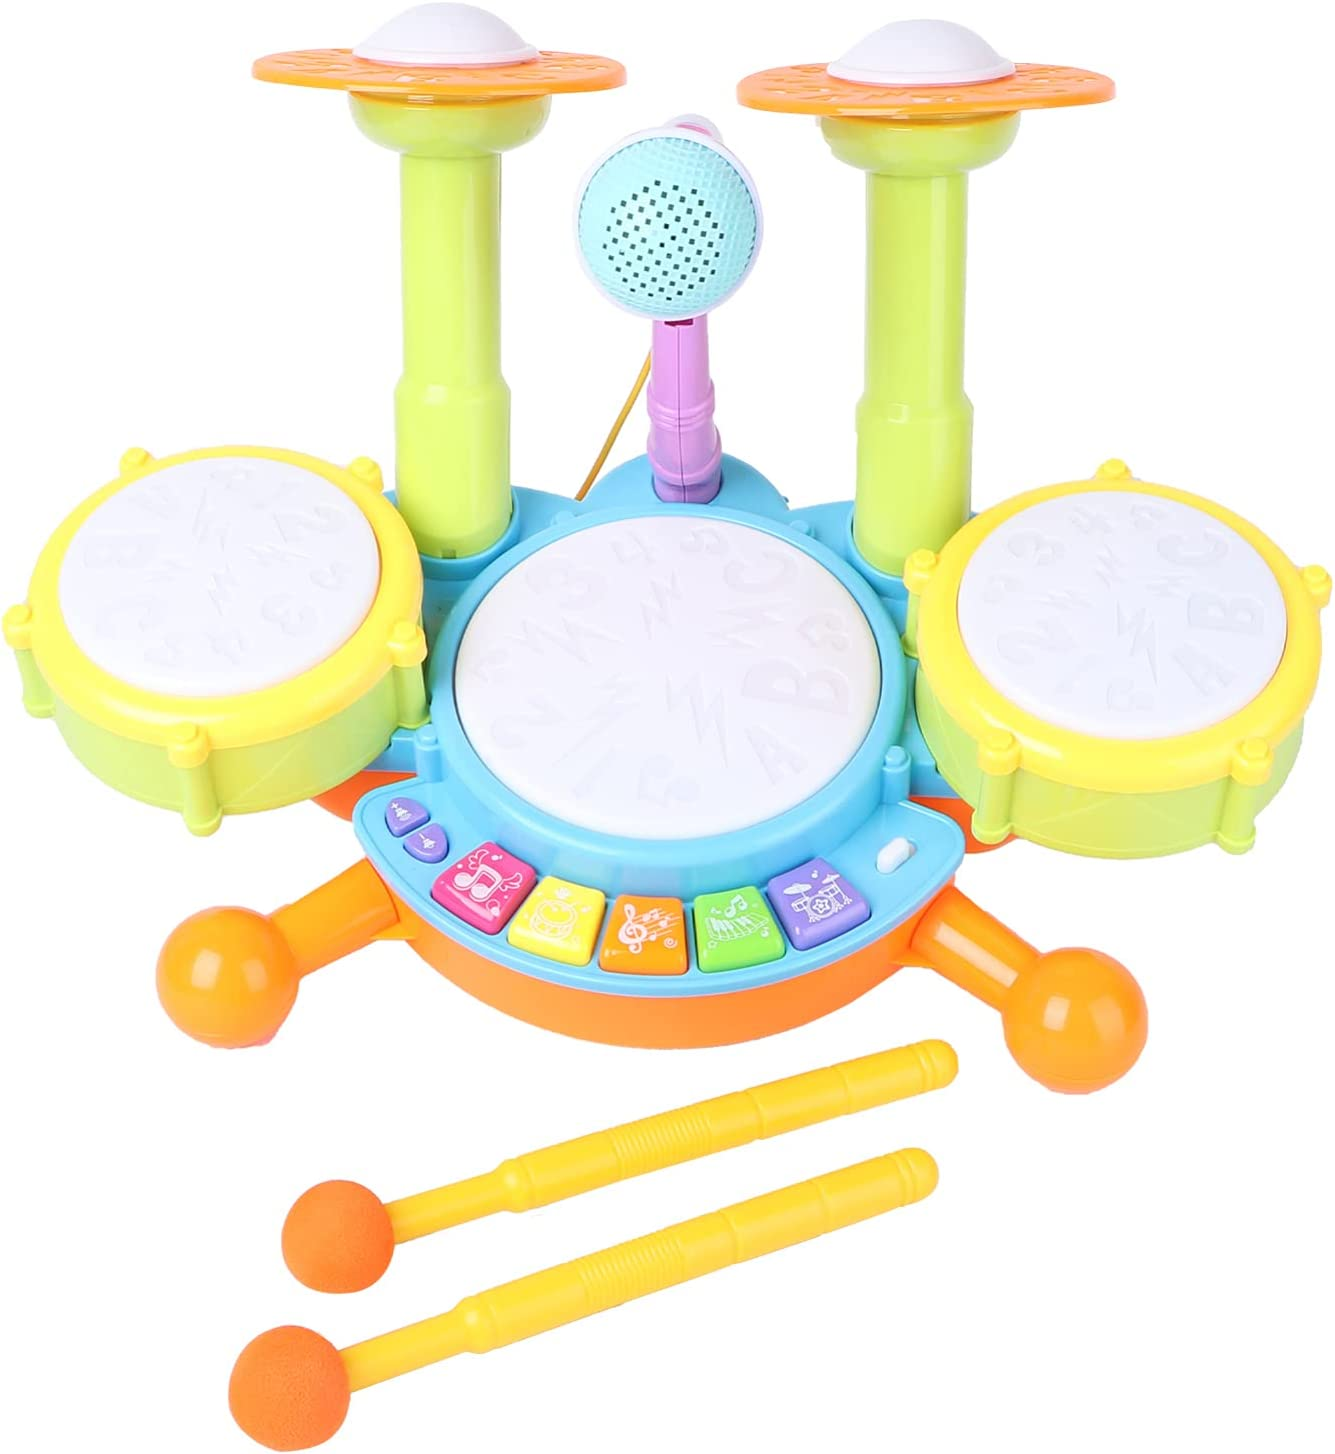 balacoo Kids Max 77% OFF Drum Set Electric Musical D with New Free Shipping Instruments Toys 2